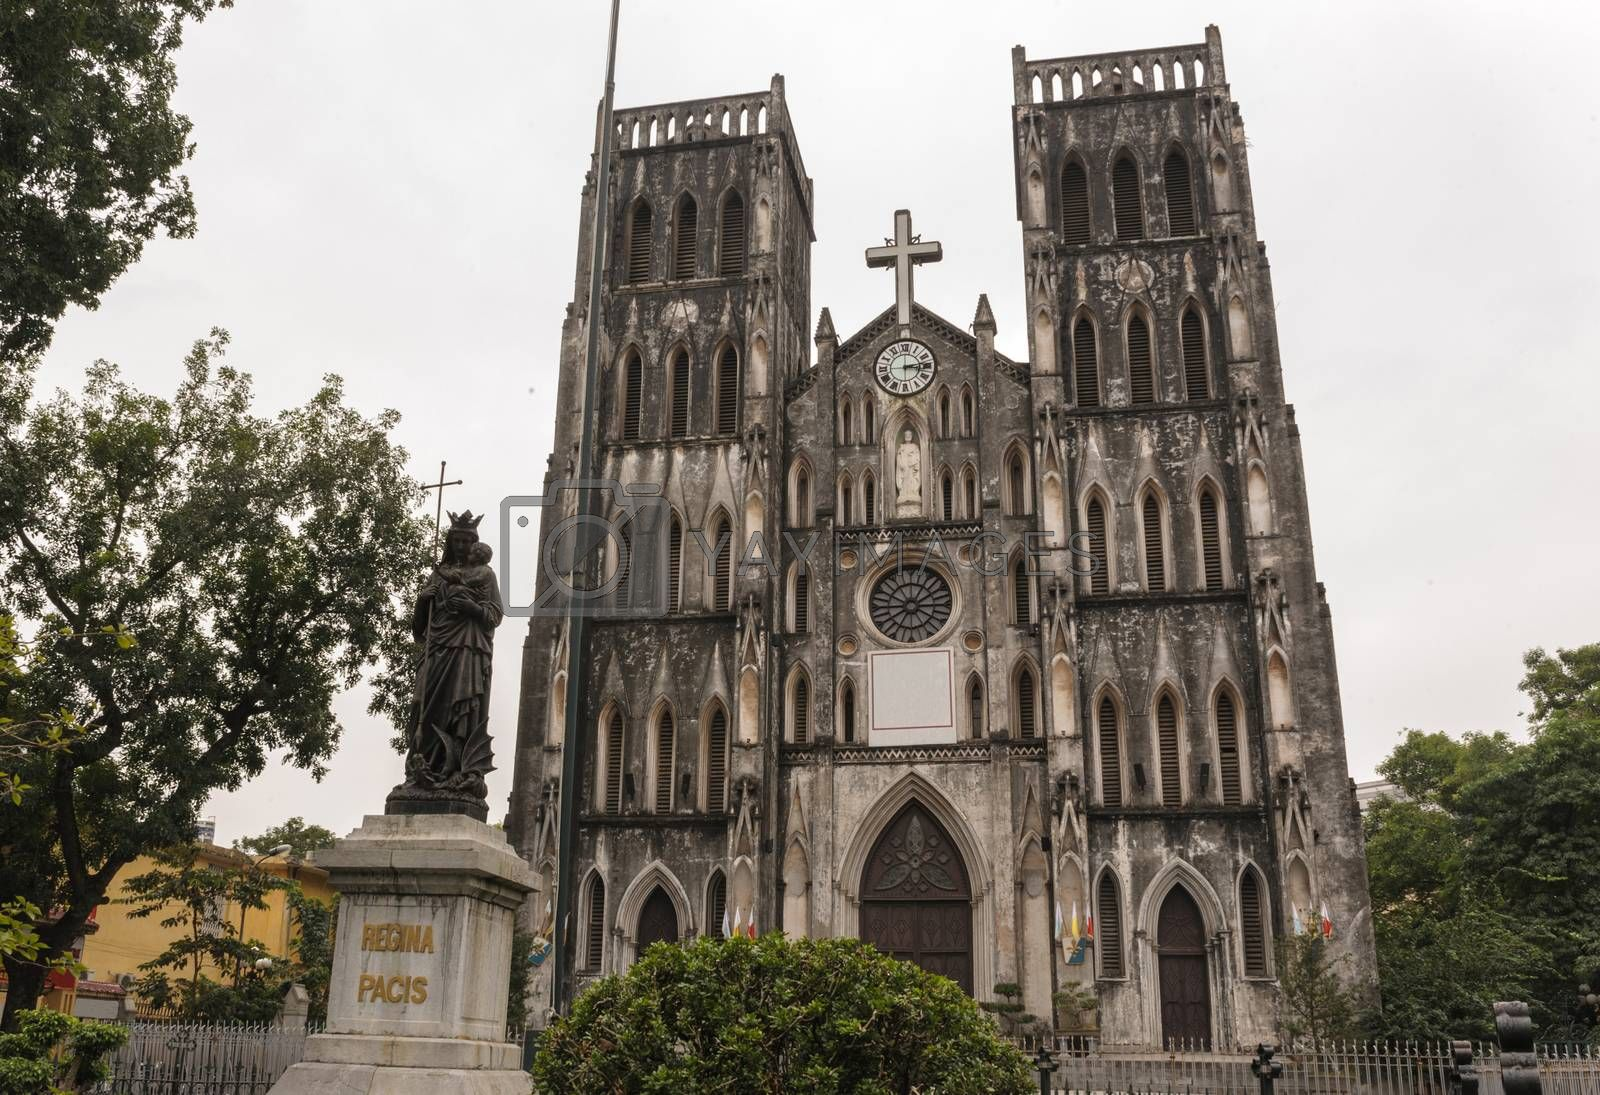 Architecture Gothic style of church the St. Joseph's Cathedral in Hoan Kiem Hanoi, Vietnam.